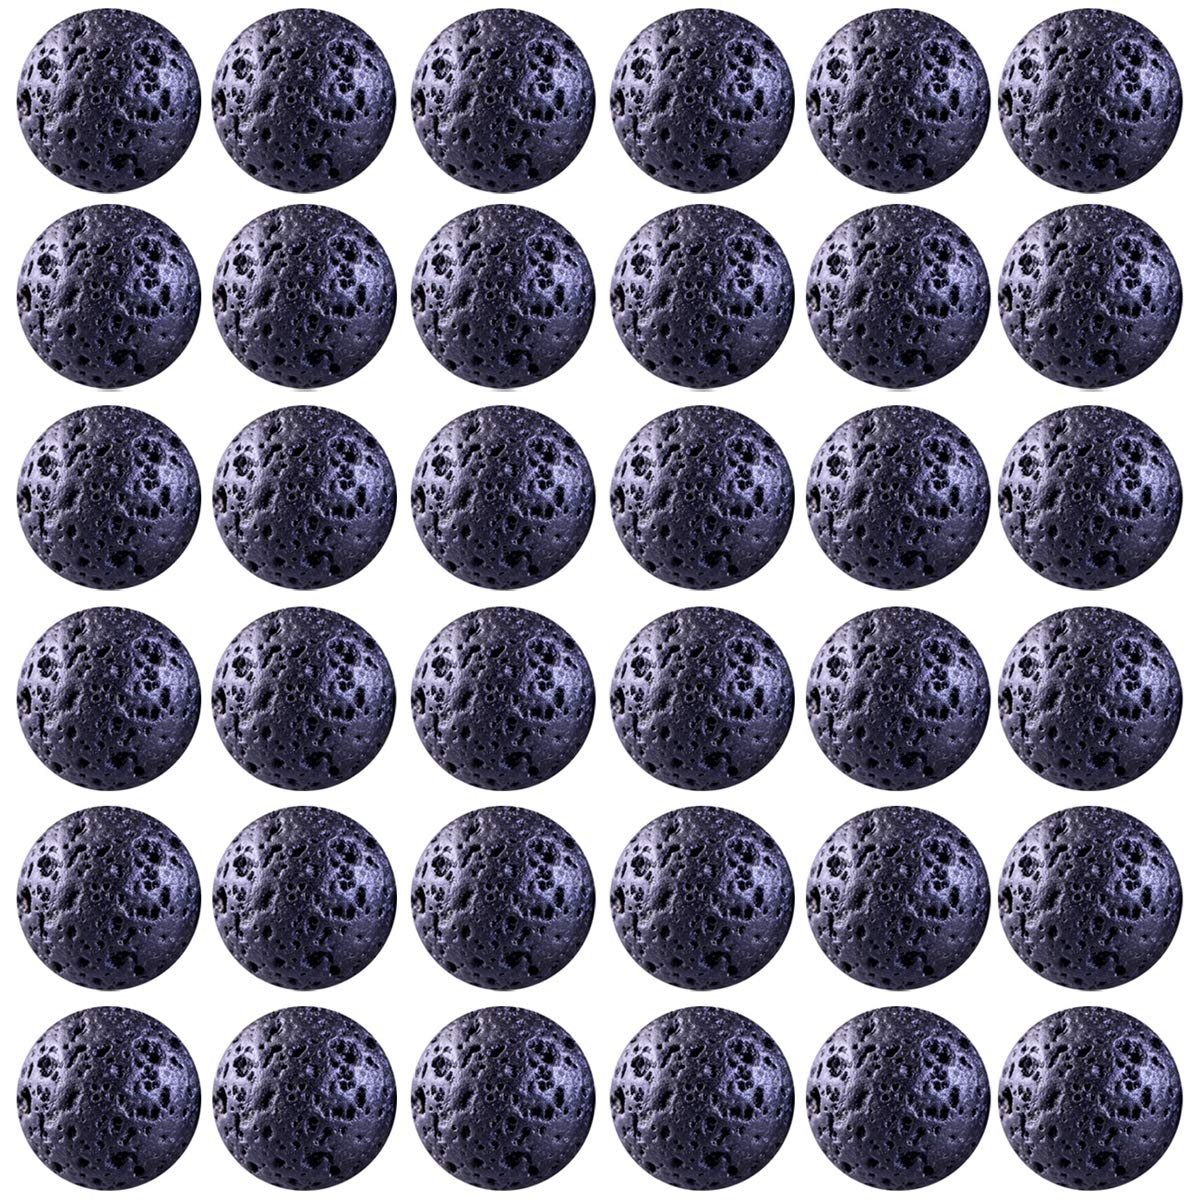 Natural Stone Beads 100pcs 8mm Black Lava Round Genuine Stone Beading Loose Gemstone Hole Size 1mm DIY Beads for Essential Oil Yoga Bracelet Necklace Earrings Jewelry Making (Black Lava Stone Beads)